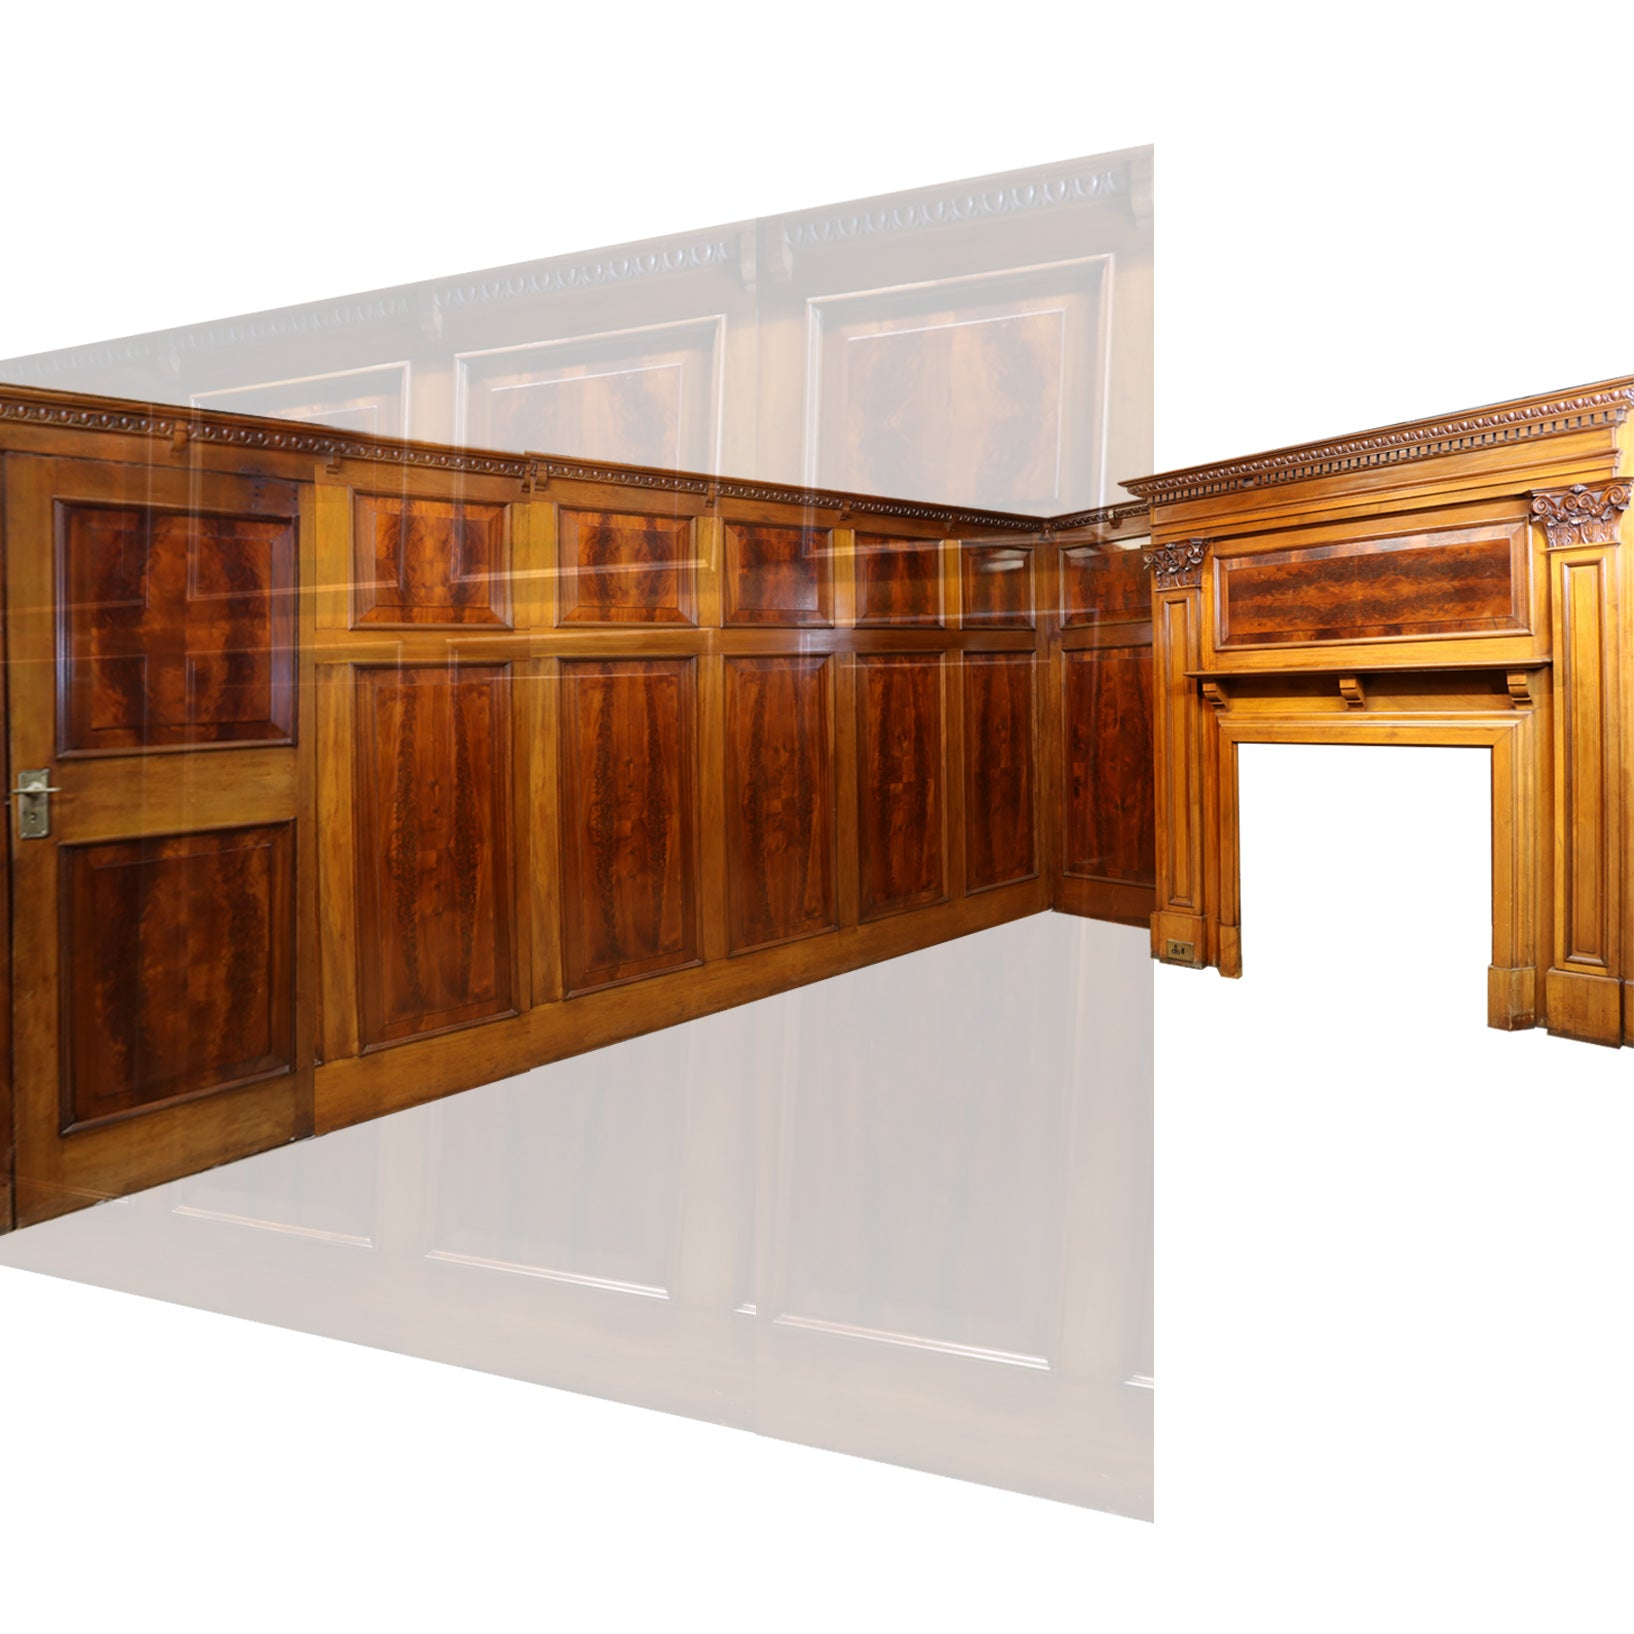 Complete Flamed Mahogany Antique Panelled Room